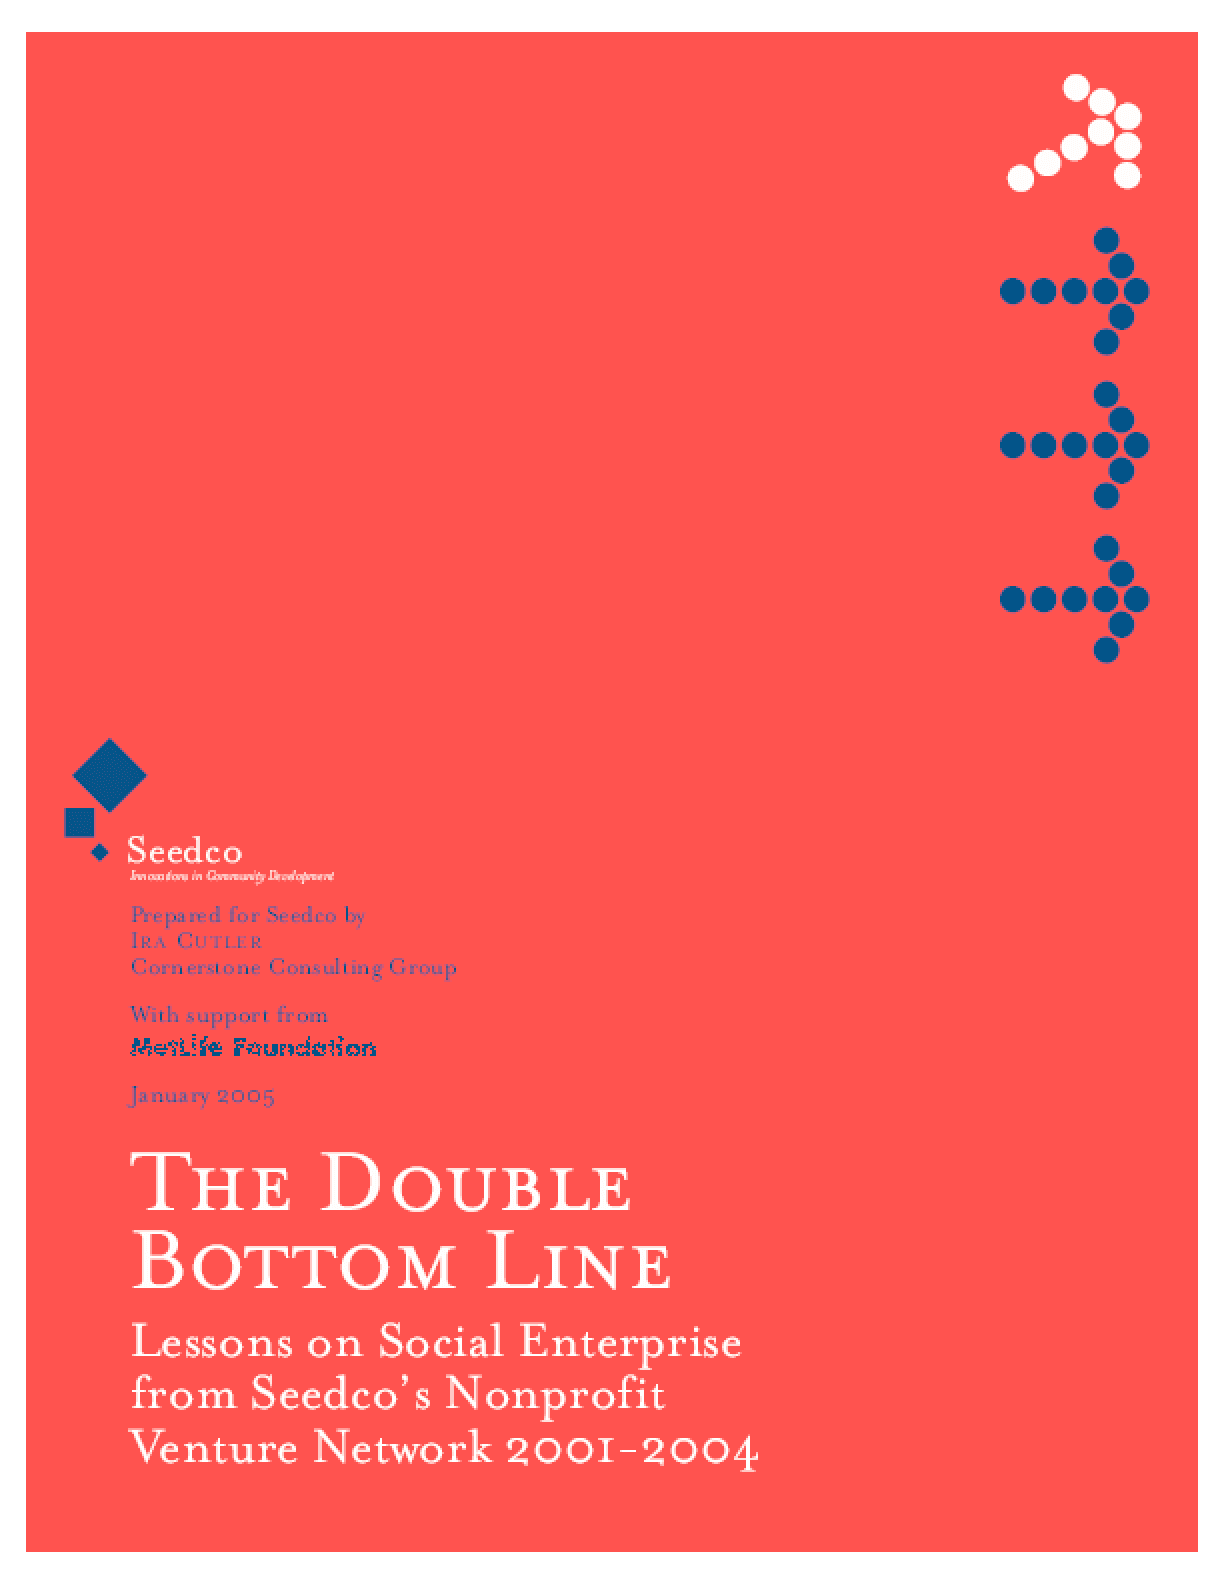 The Double Bottom Line: Lessons on Social Enterprise From Seedco's Nonprofit Venture Network 2001-2004